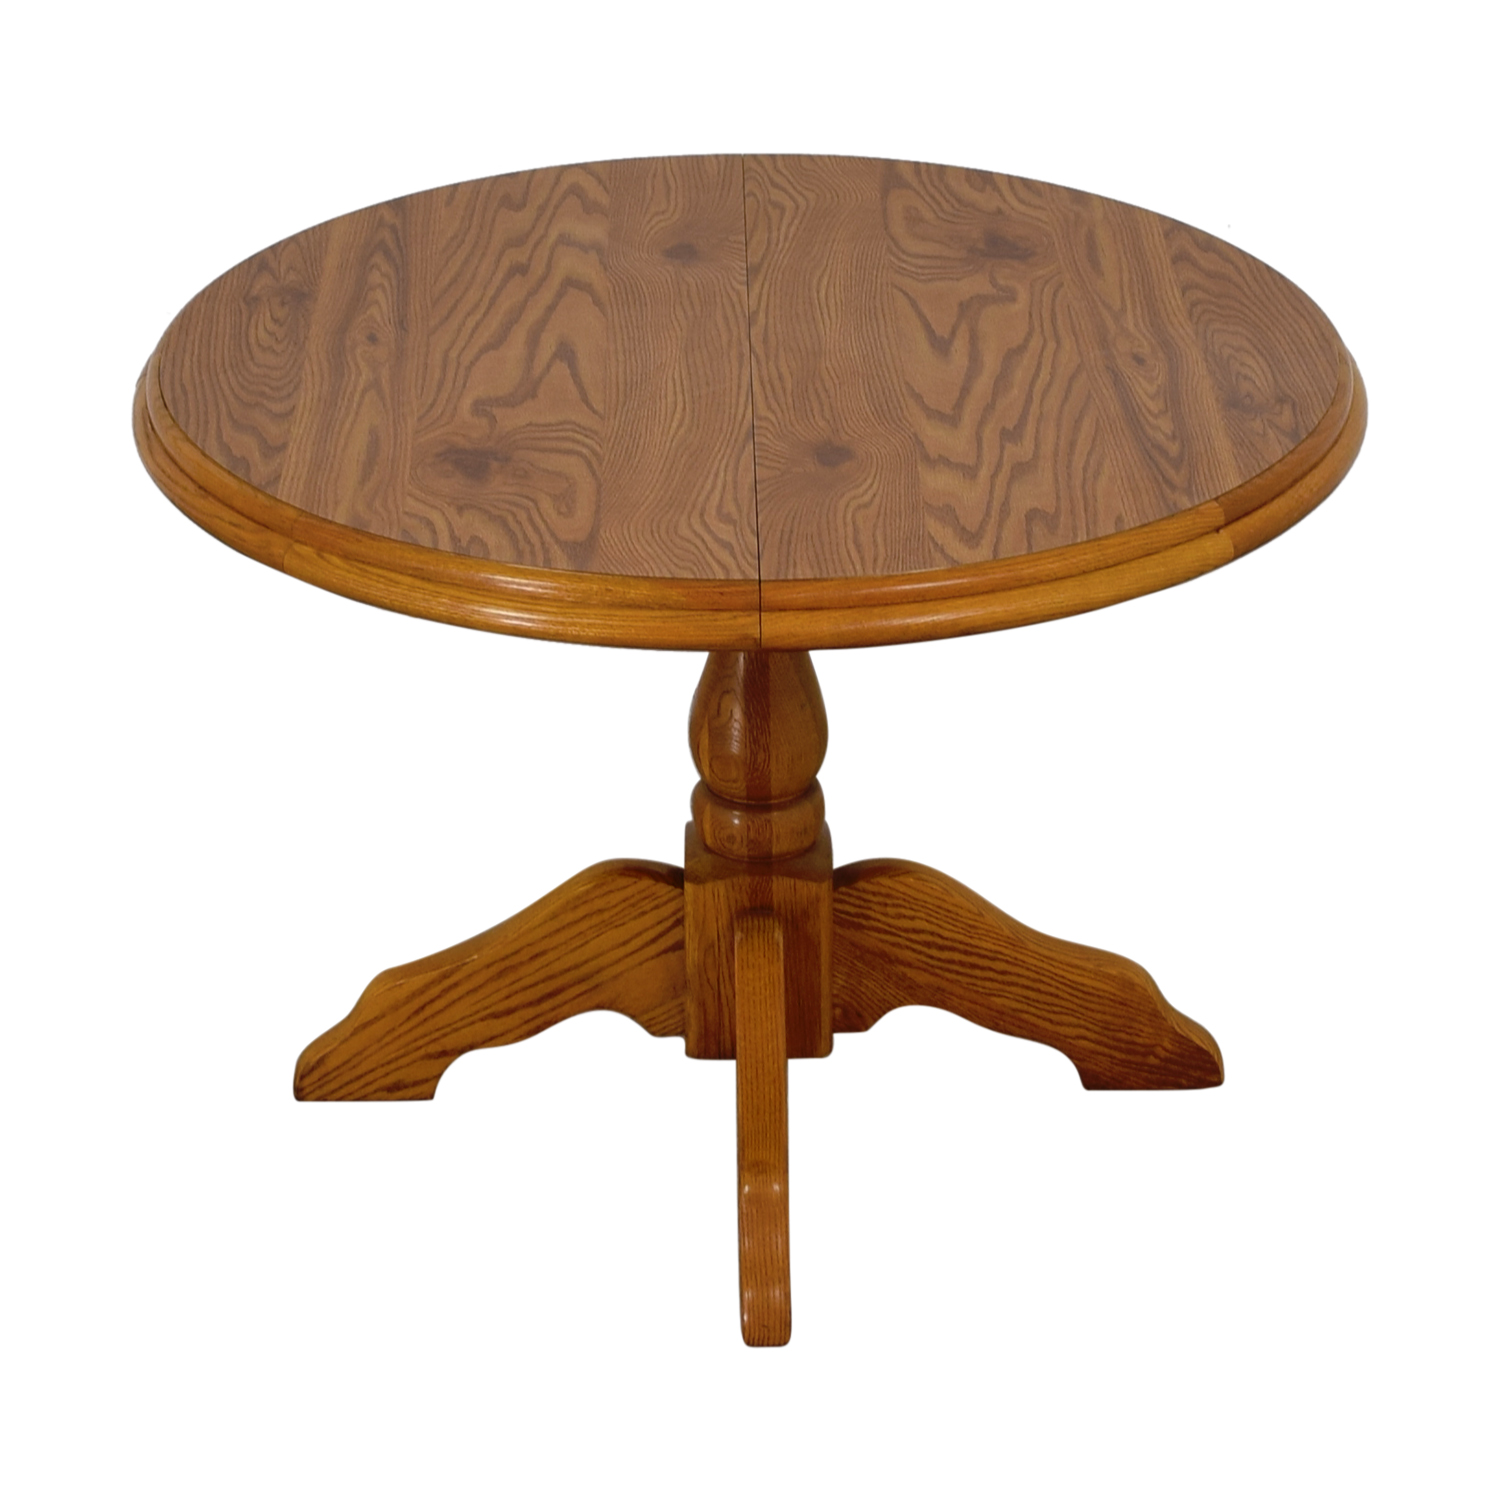 Virginia House Virginia House Round Dining Table with Leaf for sale